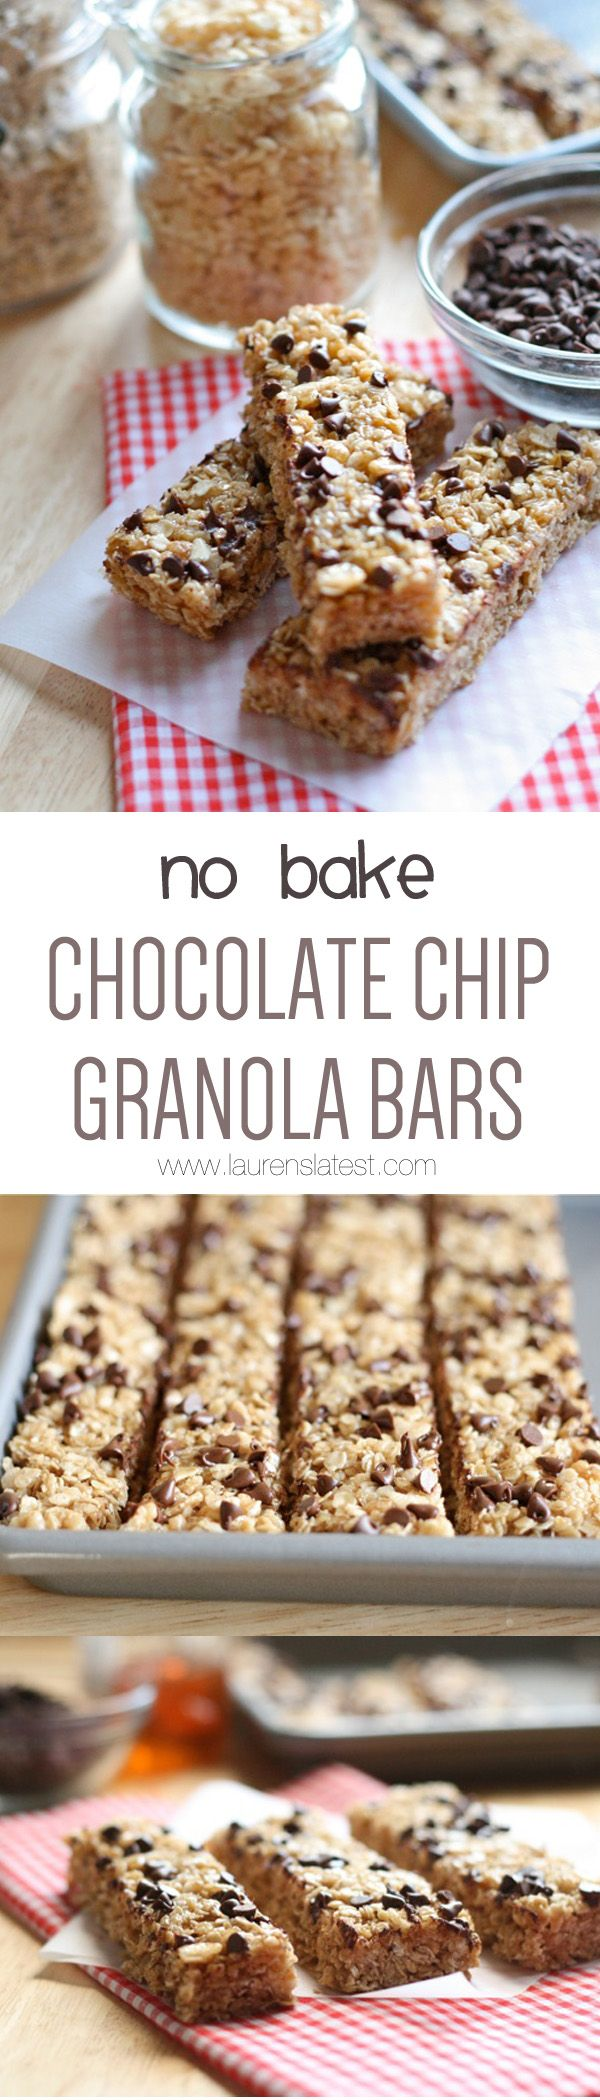 No Bake Chocolate Chip Granola Bars {Easy & Healthy!} -- I changed this recipe to be dairy-free and higher in protein: Instead of 2 cups of quick oats I did (1.5 cups quick oats, 1/4 cup hemp hearts, 1/4 cup unsweetened finely shredded coconut, 5 dried apricots, chopped finely), and I subbed coconut oil for butter. Follow original instructions. Sprinkle with 1 tbsp cocoa nibs and handful of dairy-free choc-chips. If I had pepitas I would have added those, too. 5 stars with the amendments!